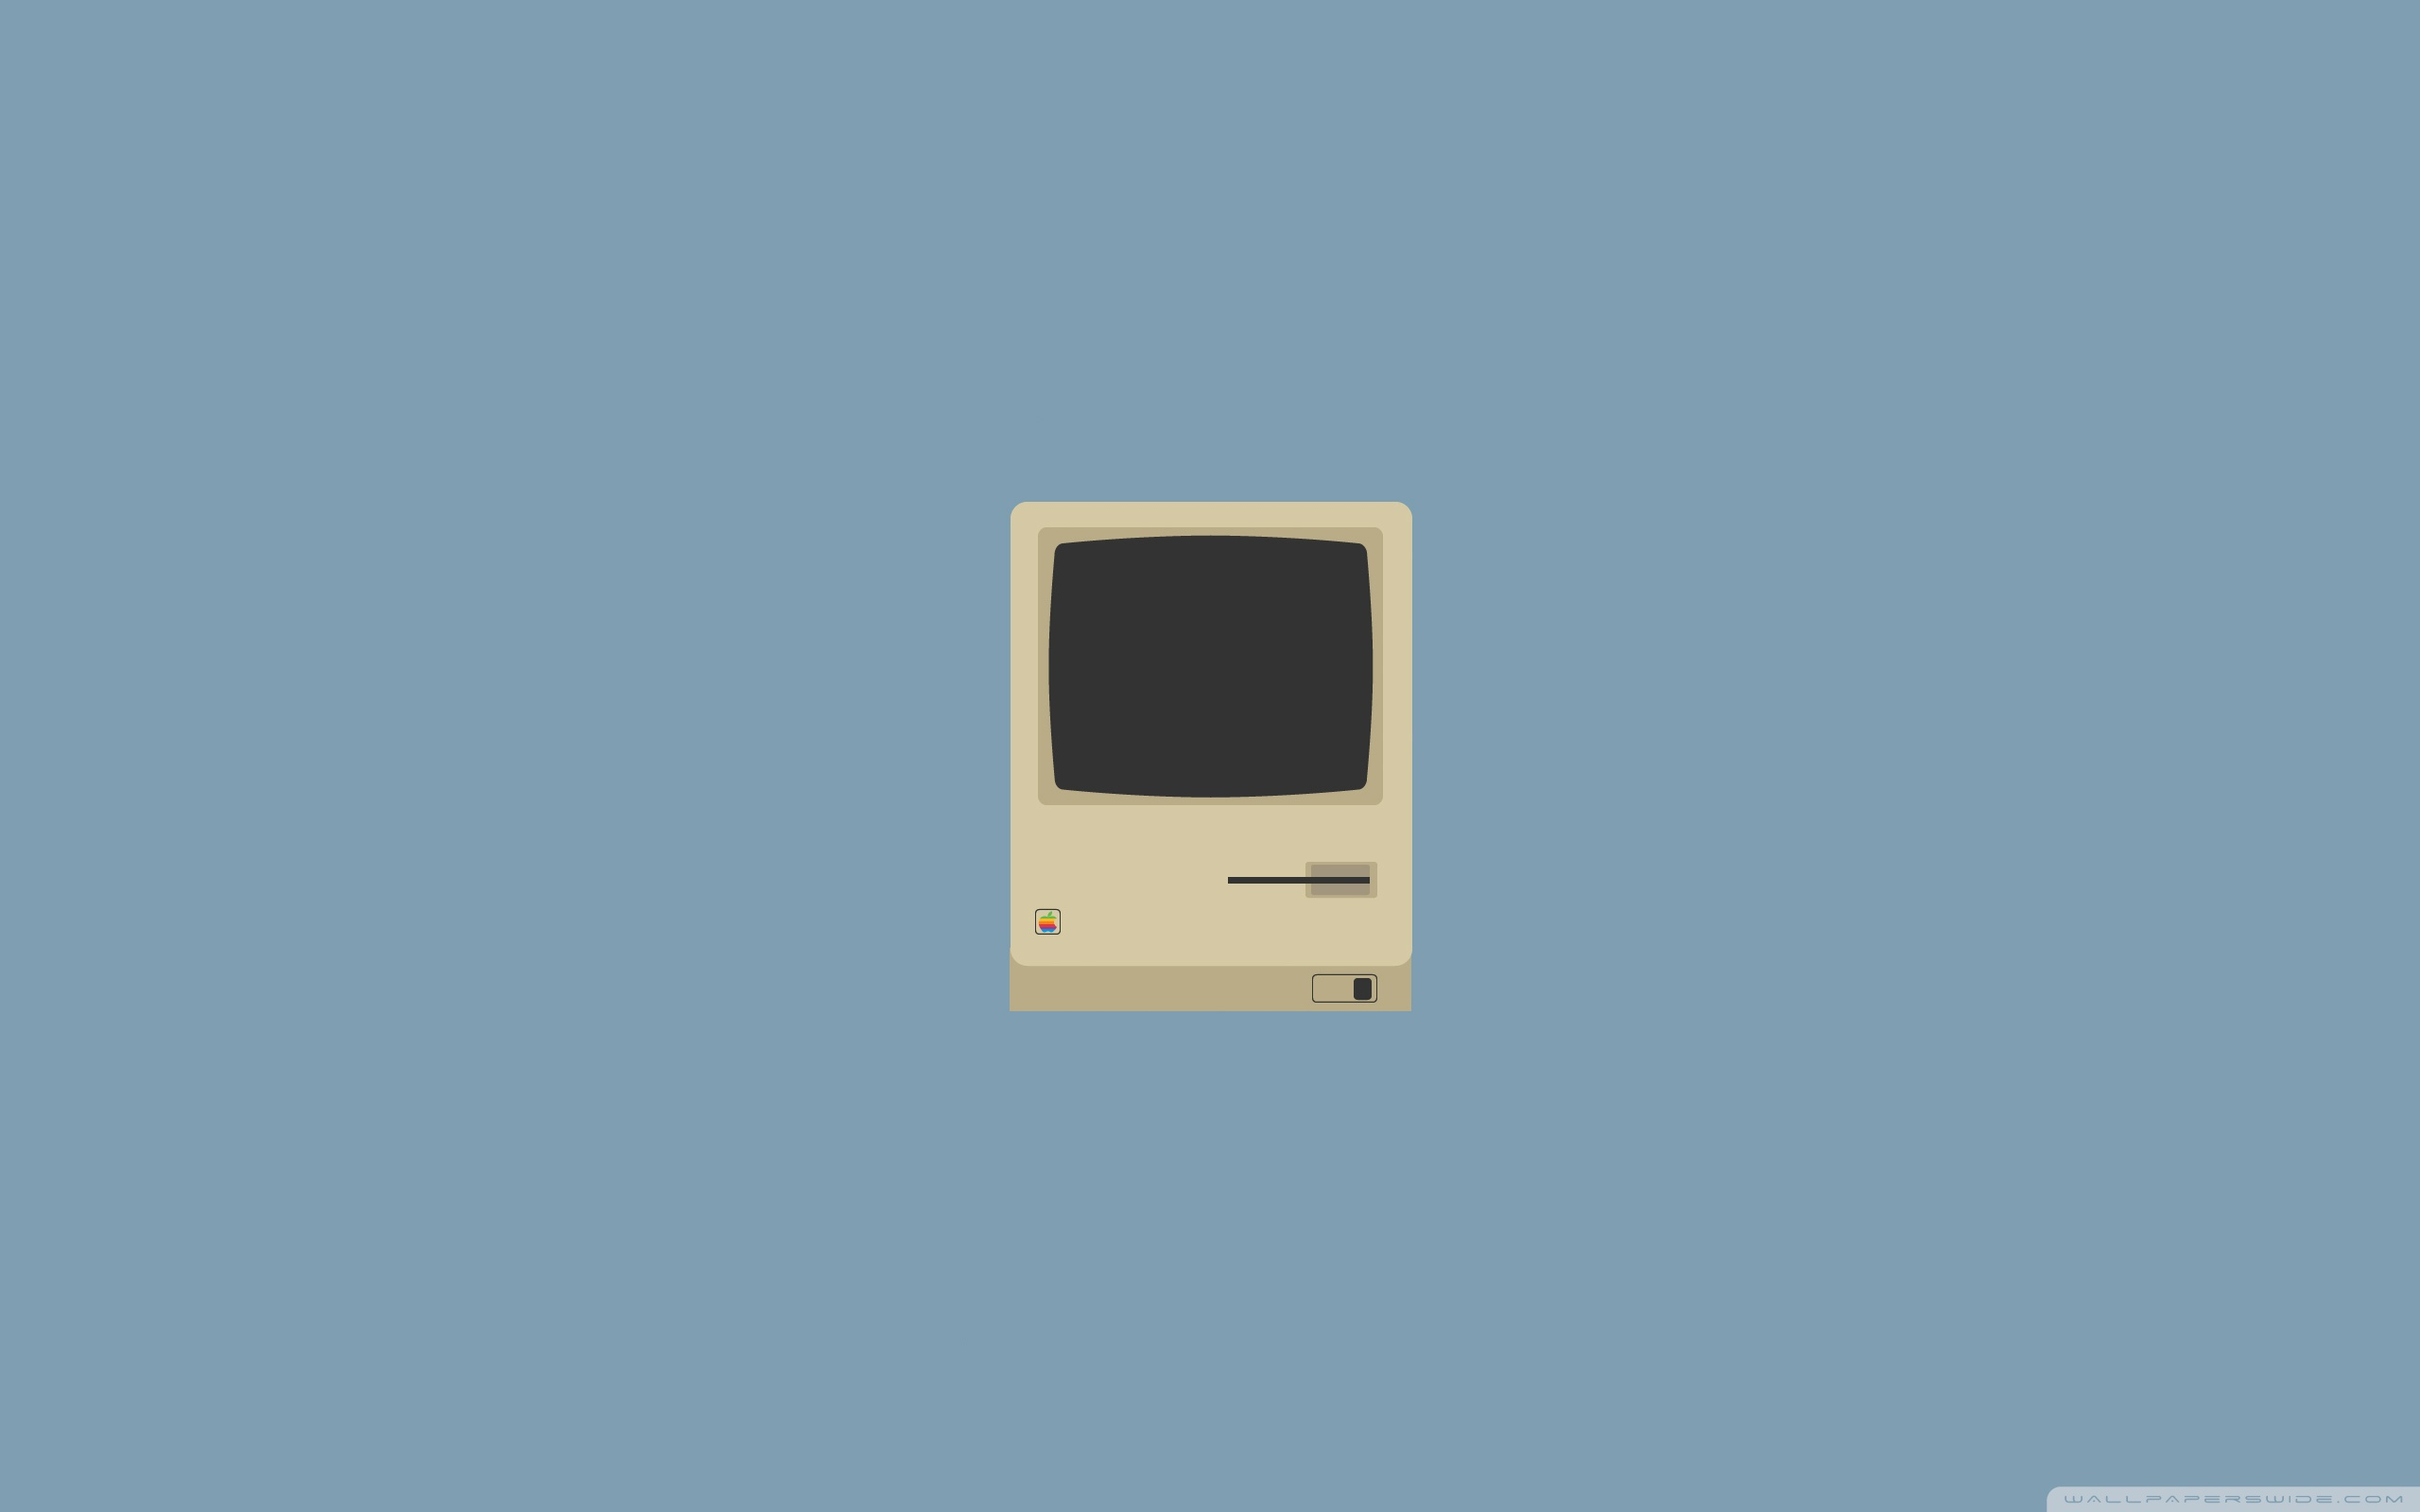 Old Apple Wallpaper